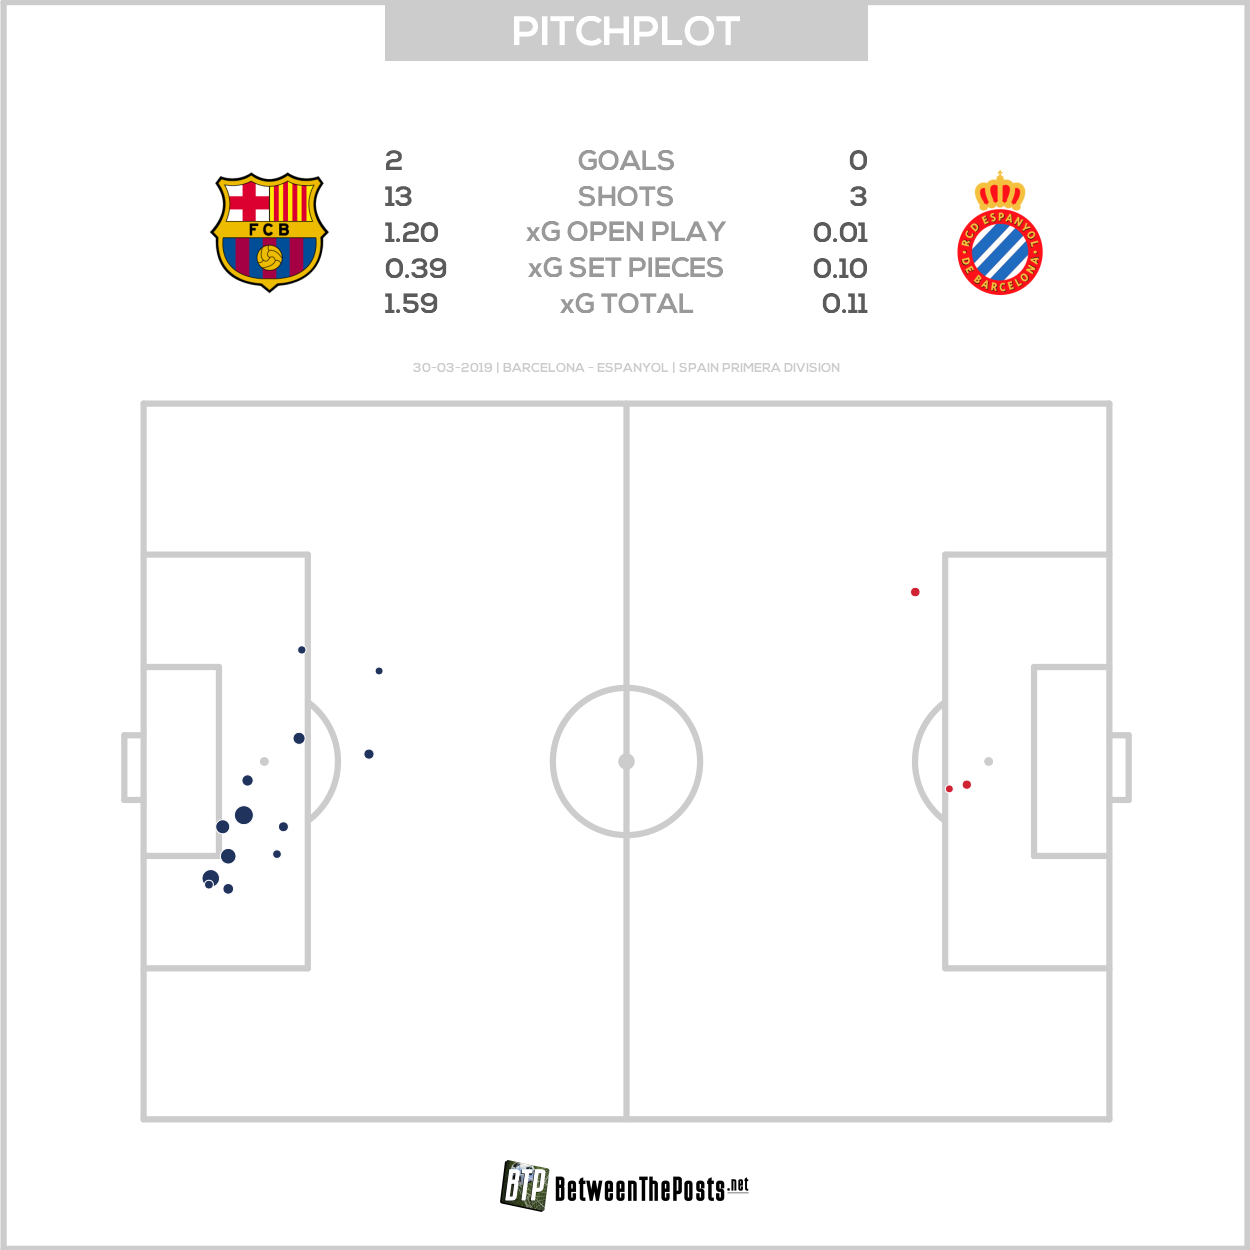 Expected goals pitch plot Barcelona - Espanyol 2-0 LaLiga